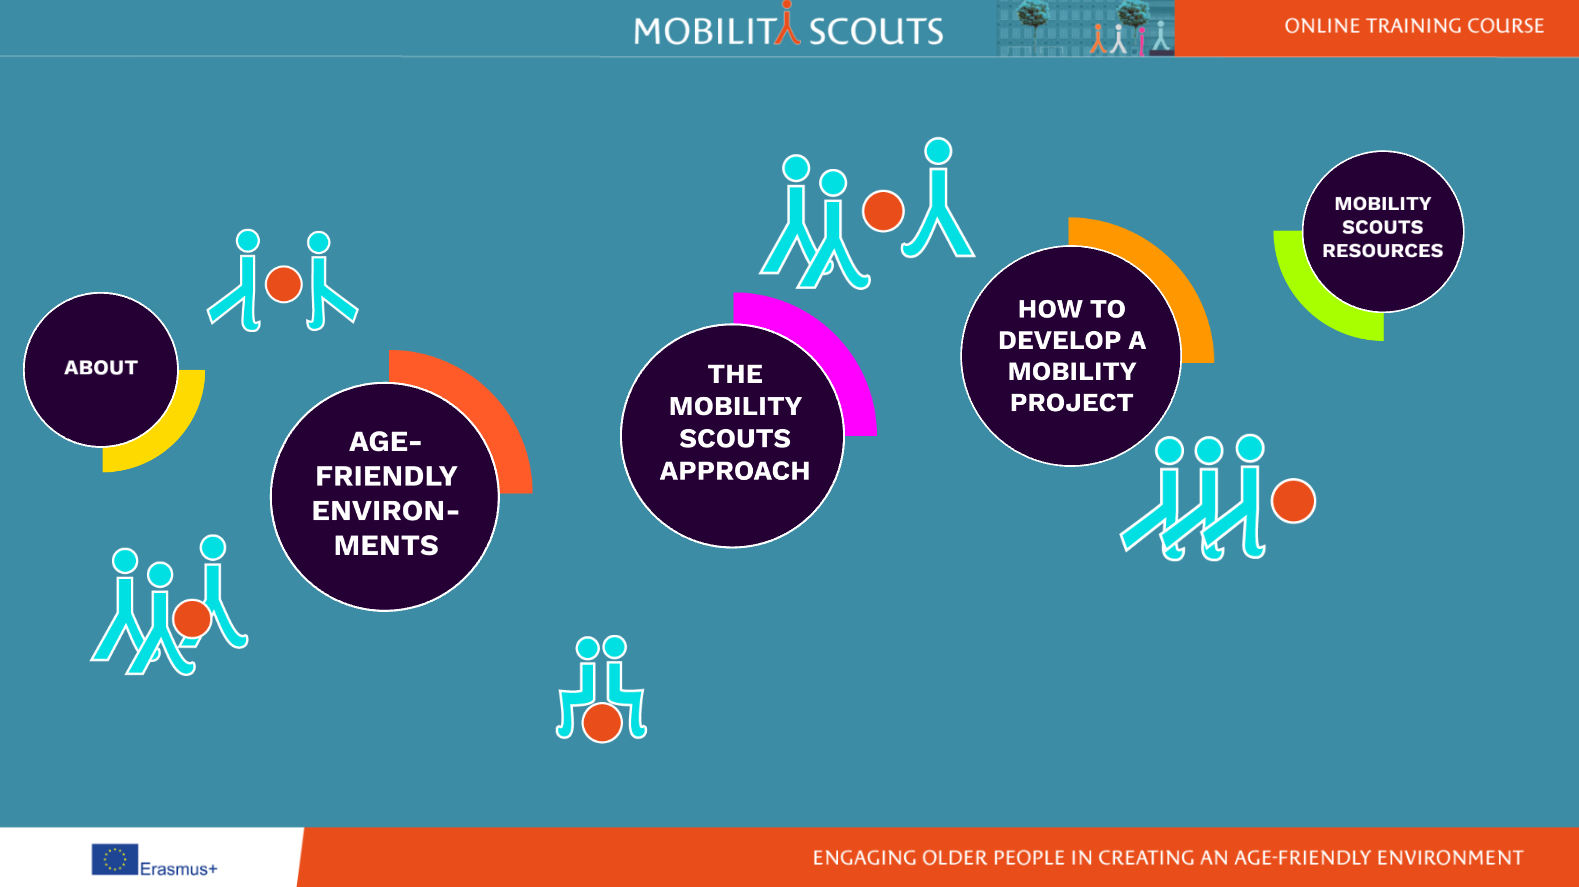 MobilityScouts-OnlineTraining-printscreen